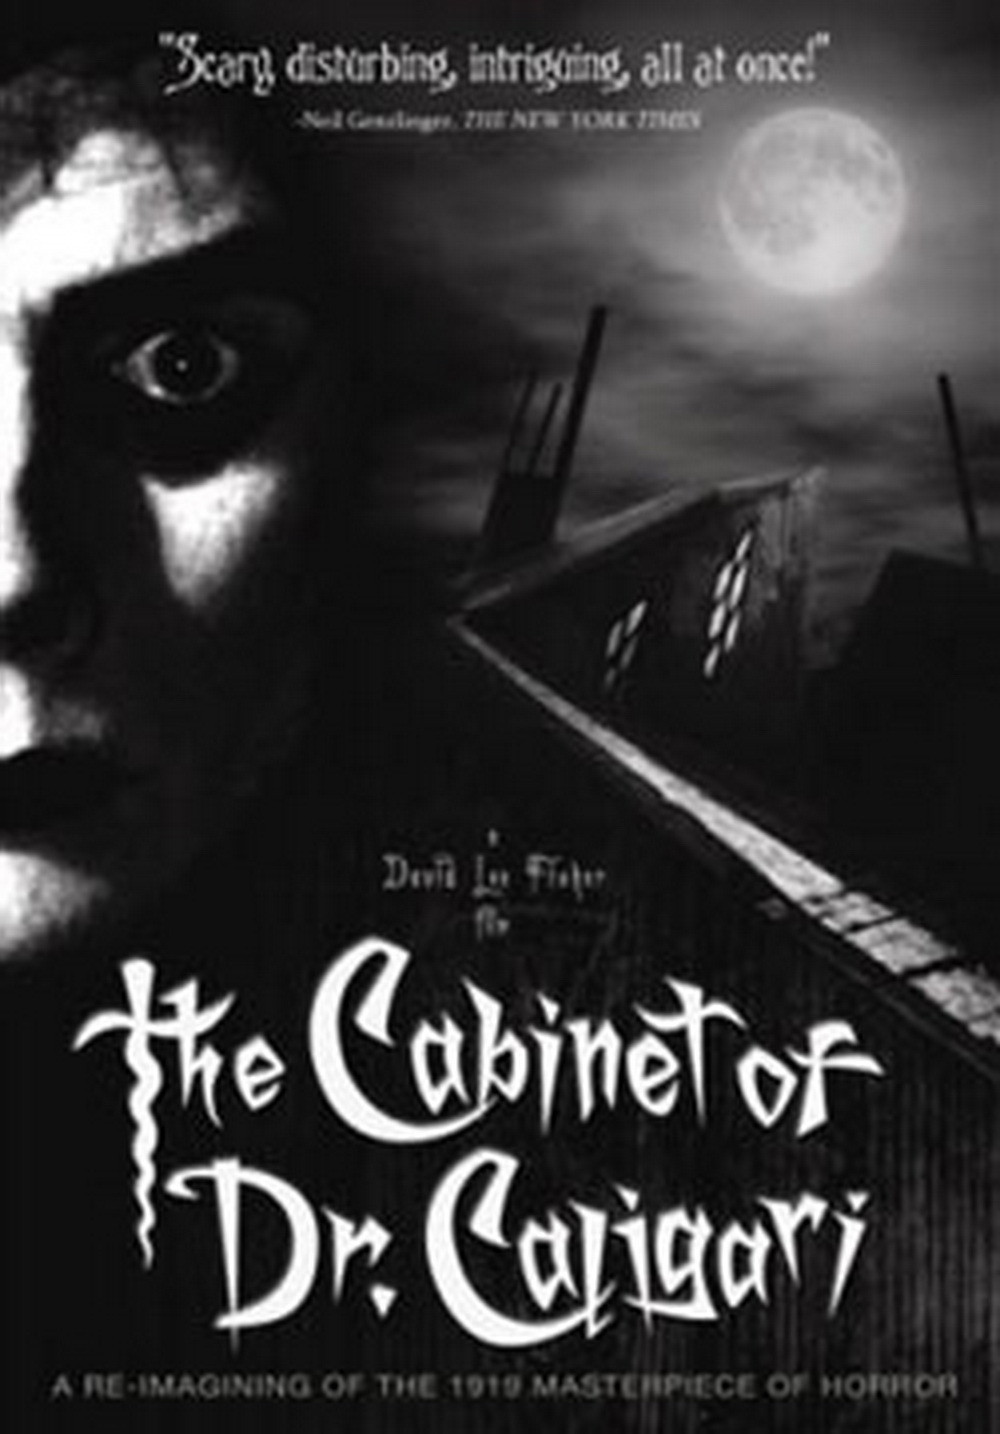 an analysis of the movie the cabinet of dr caligari During the silent film era the cabinet of dr caligari also features one of the earliest known examples of situational typography interacting with a scene through the use of visual special effects, in this case stop-motion animation.